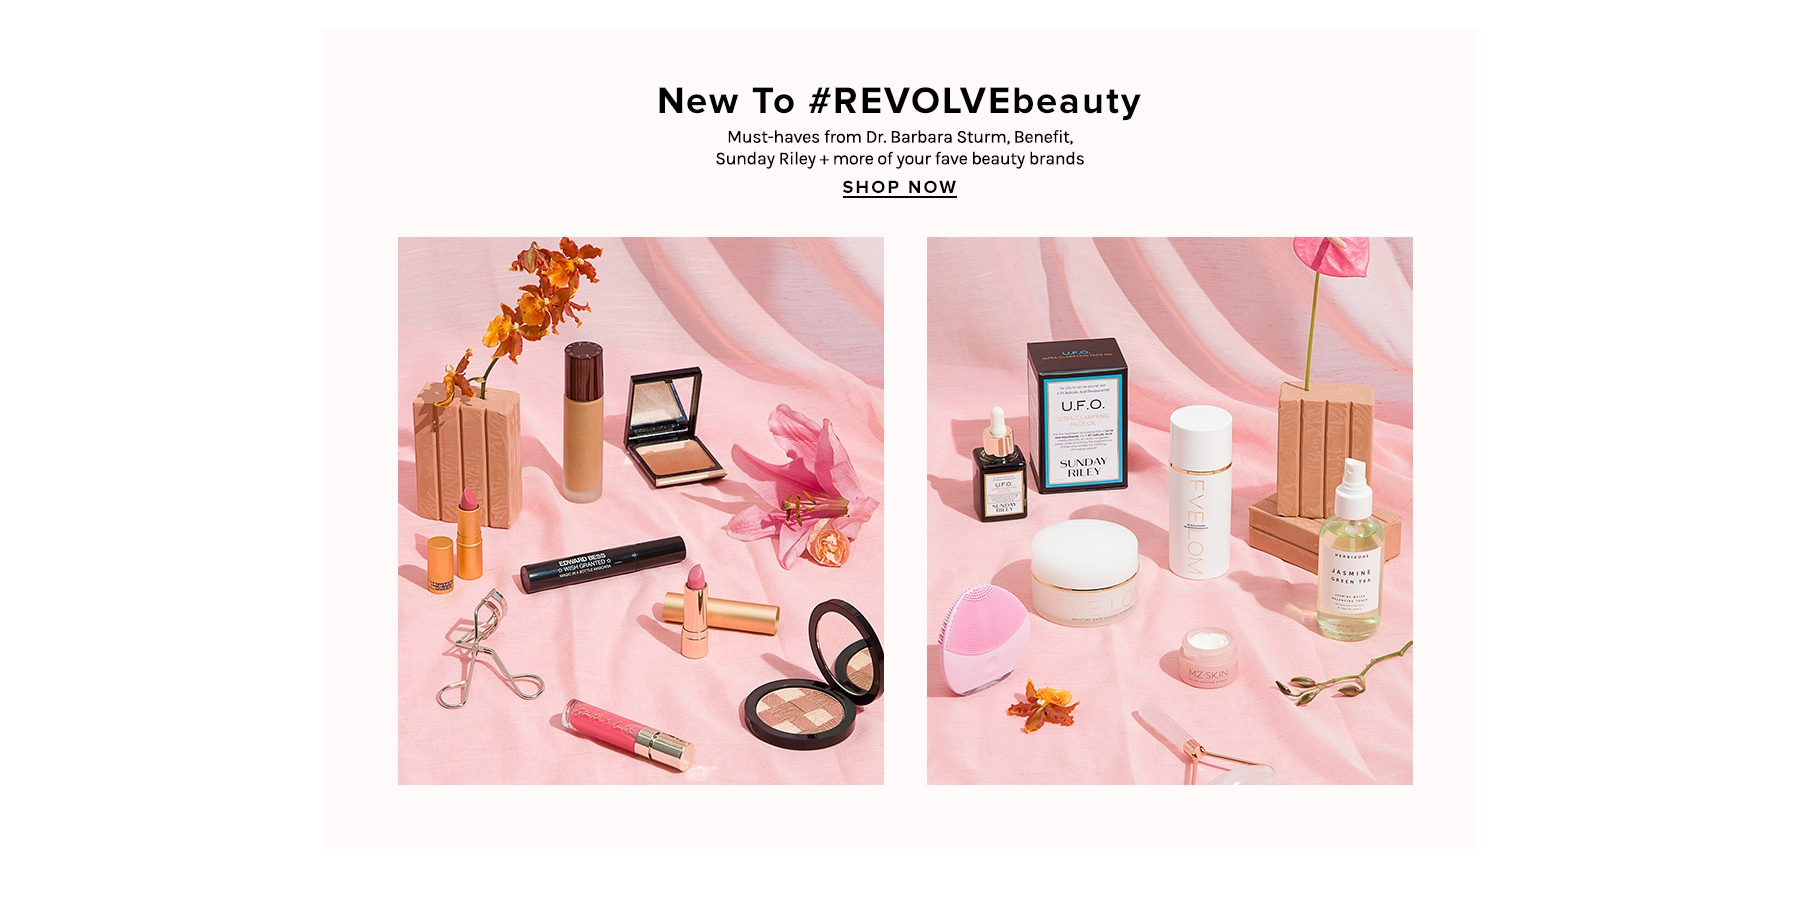 New To REVOLVEbeauty. Must-haves from Dr. Barbara Sturm, Benefit, Sunday Riley + more of your fave beauty brands. Shop now.